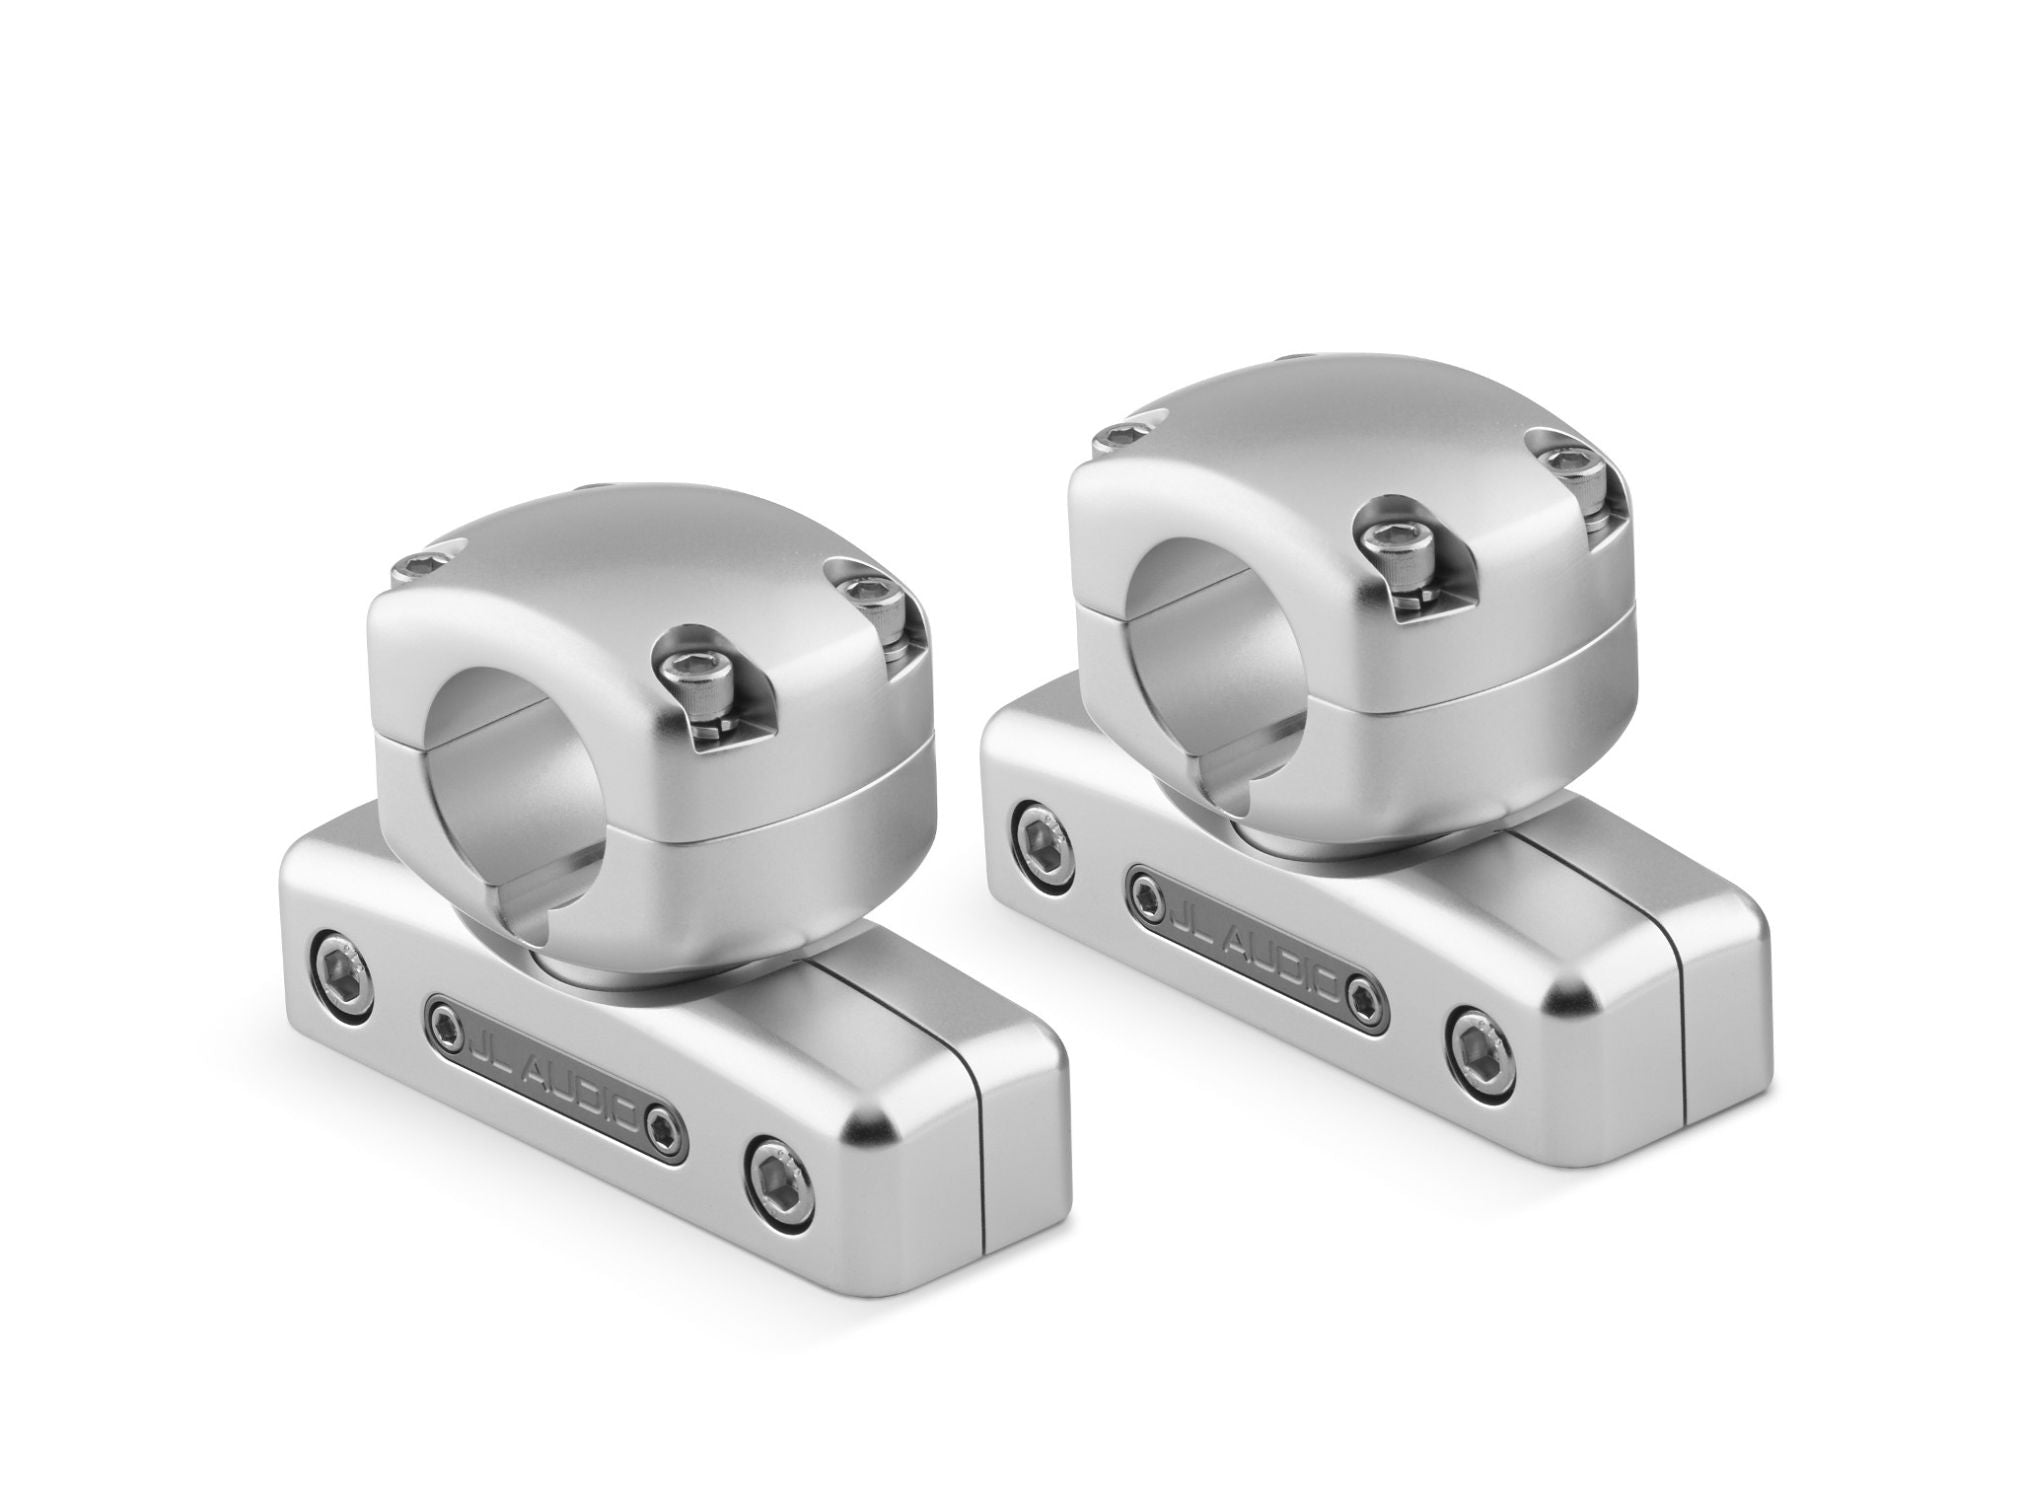 M-SWMCPv3-1-315 Swivel Mounting Clamp Pair